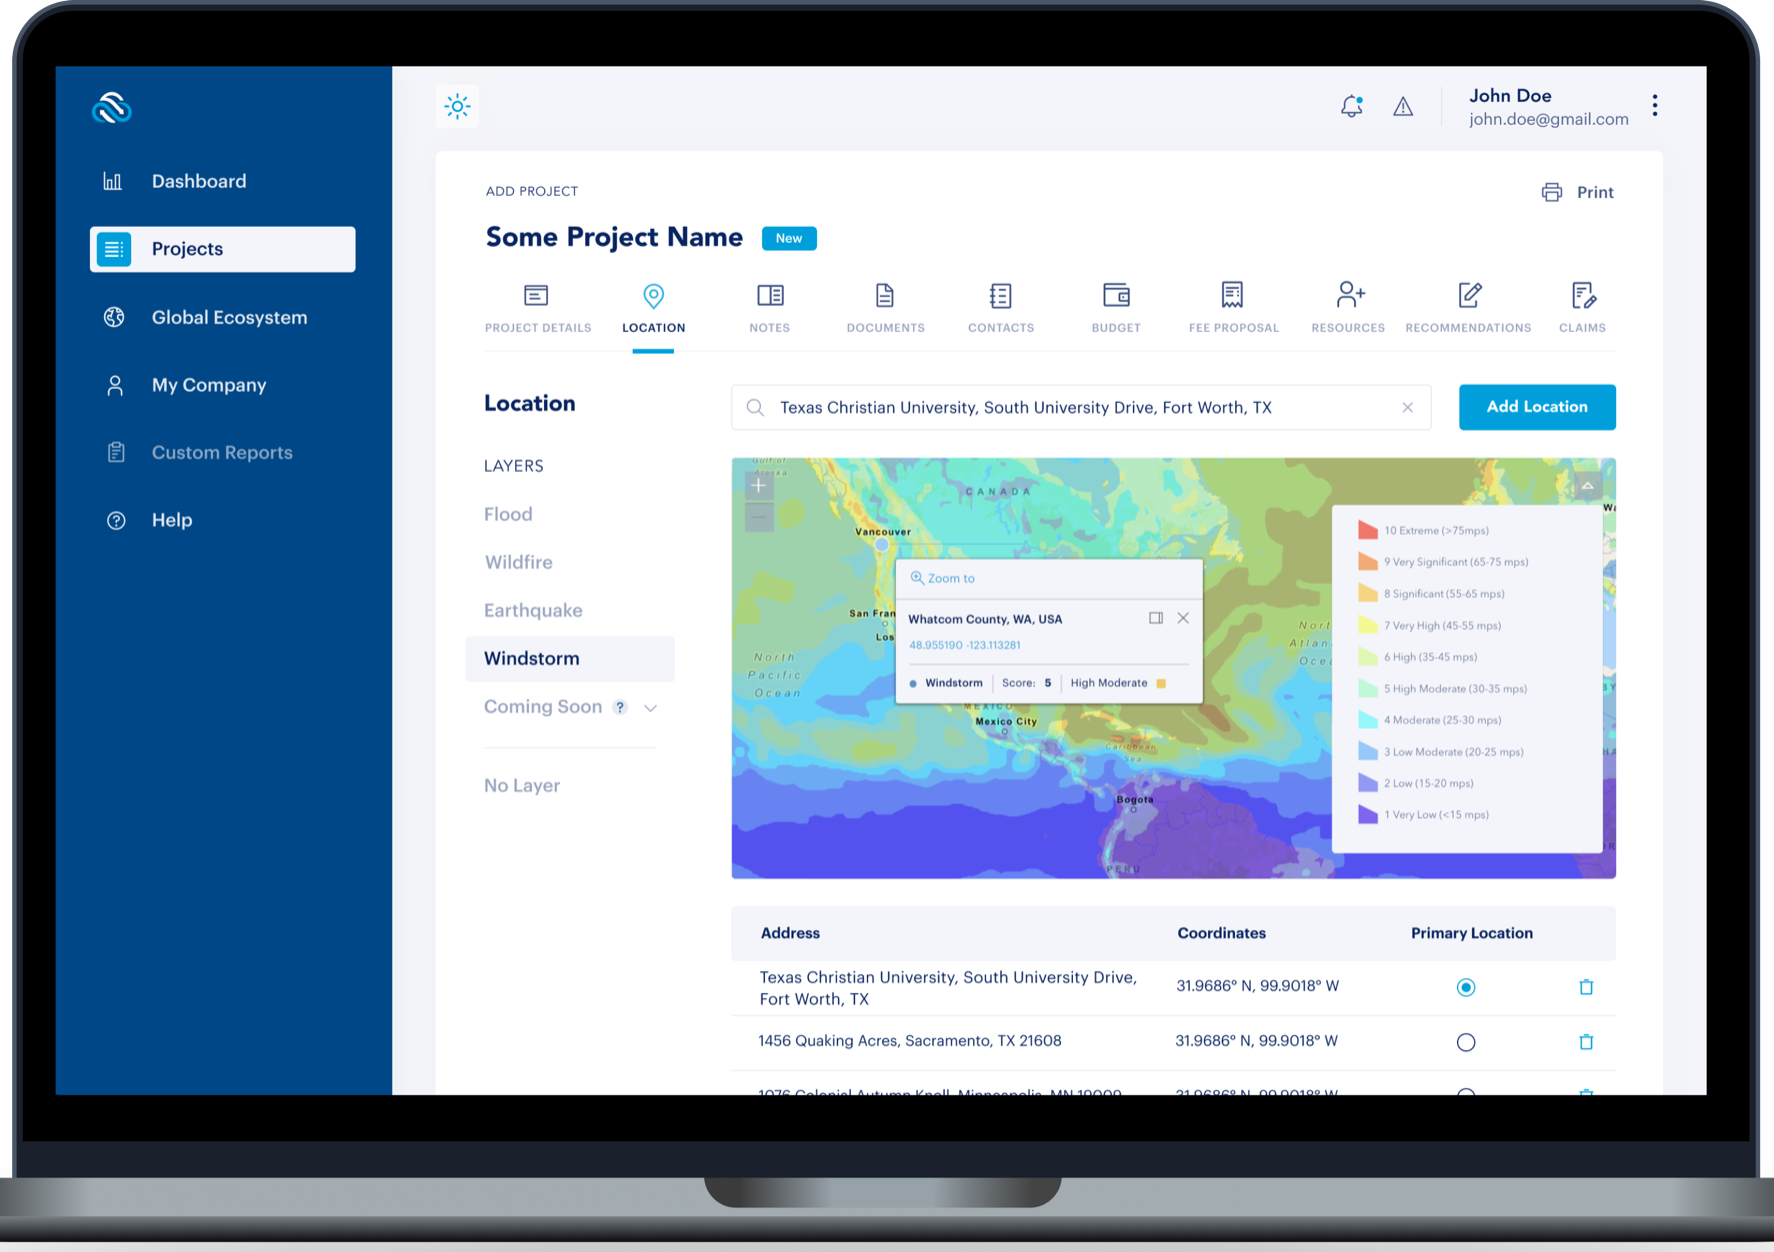 iMitig8 Risk Global allows users to visualize weather-associated risks through several enriched layers of geolocation data